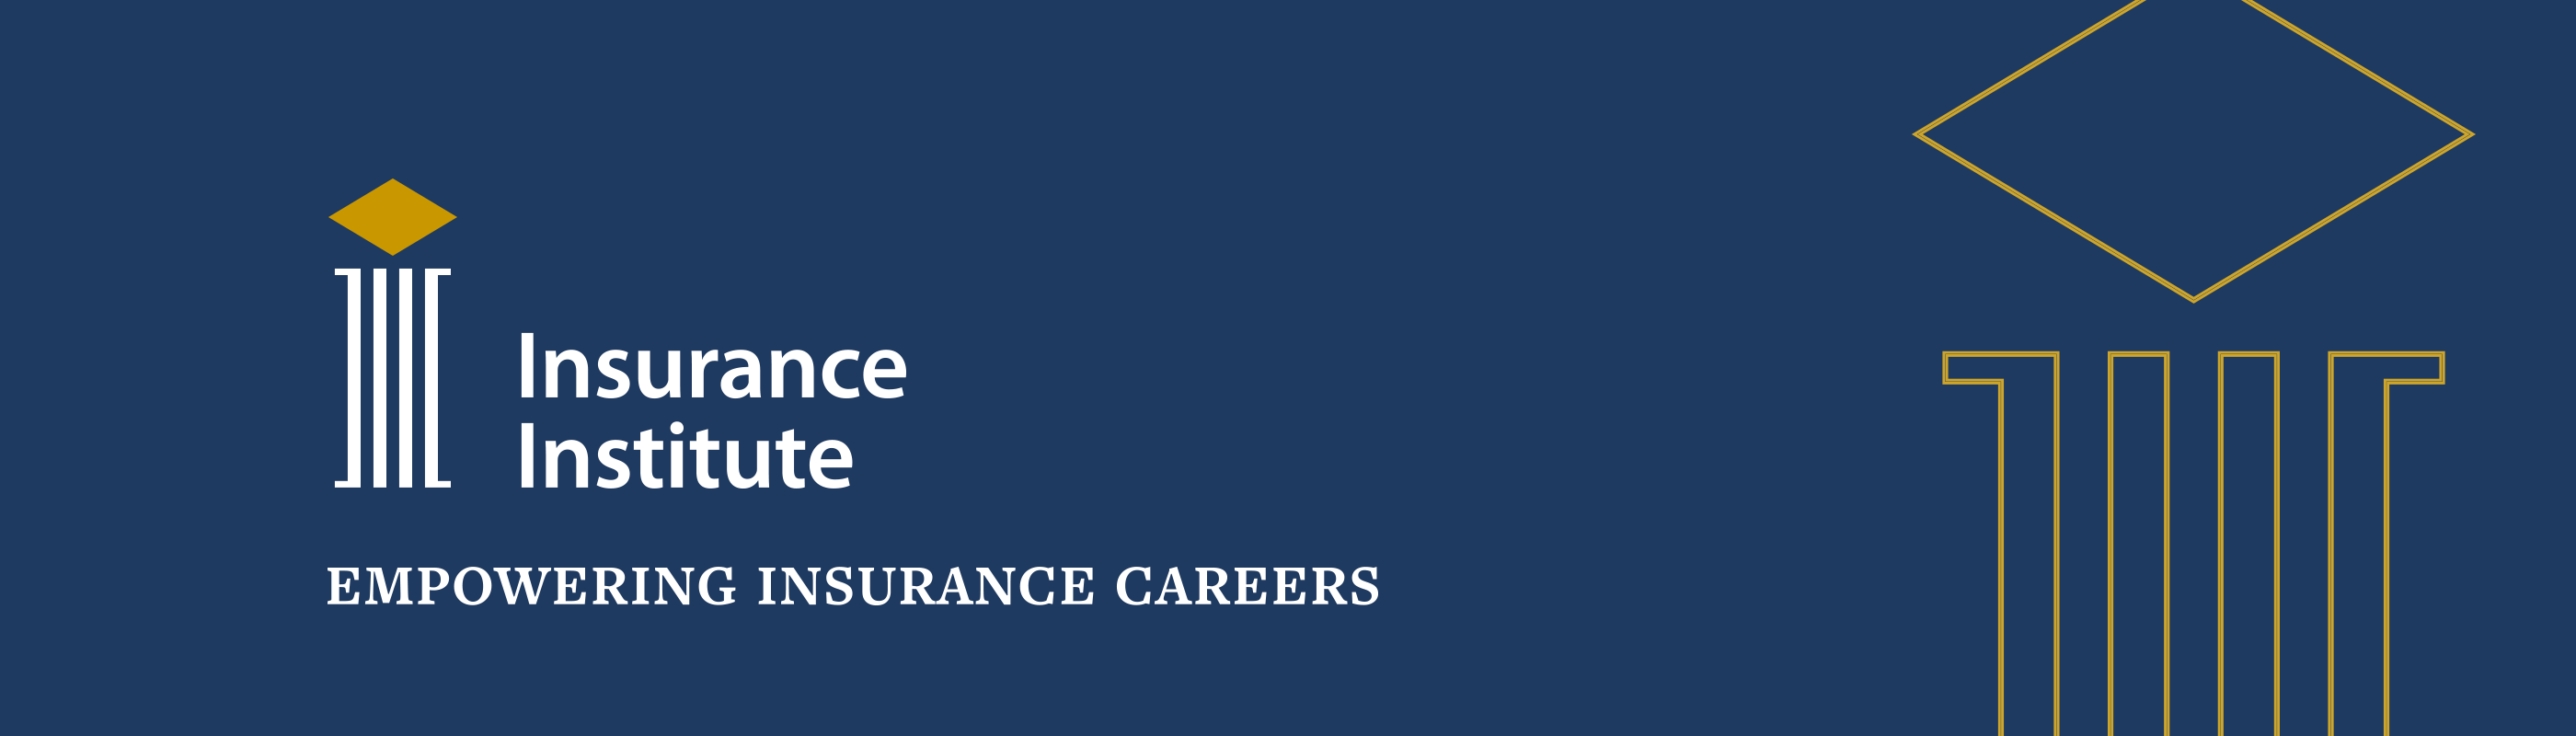 Empowering Insurance Careers